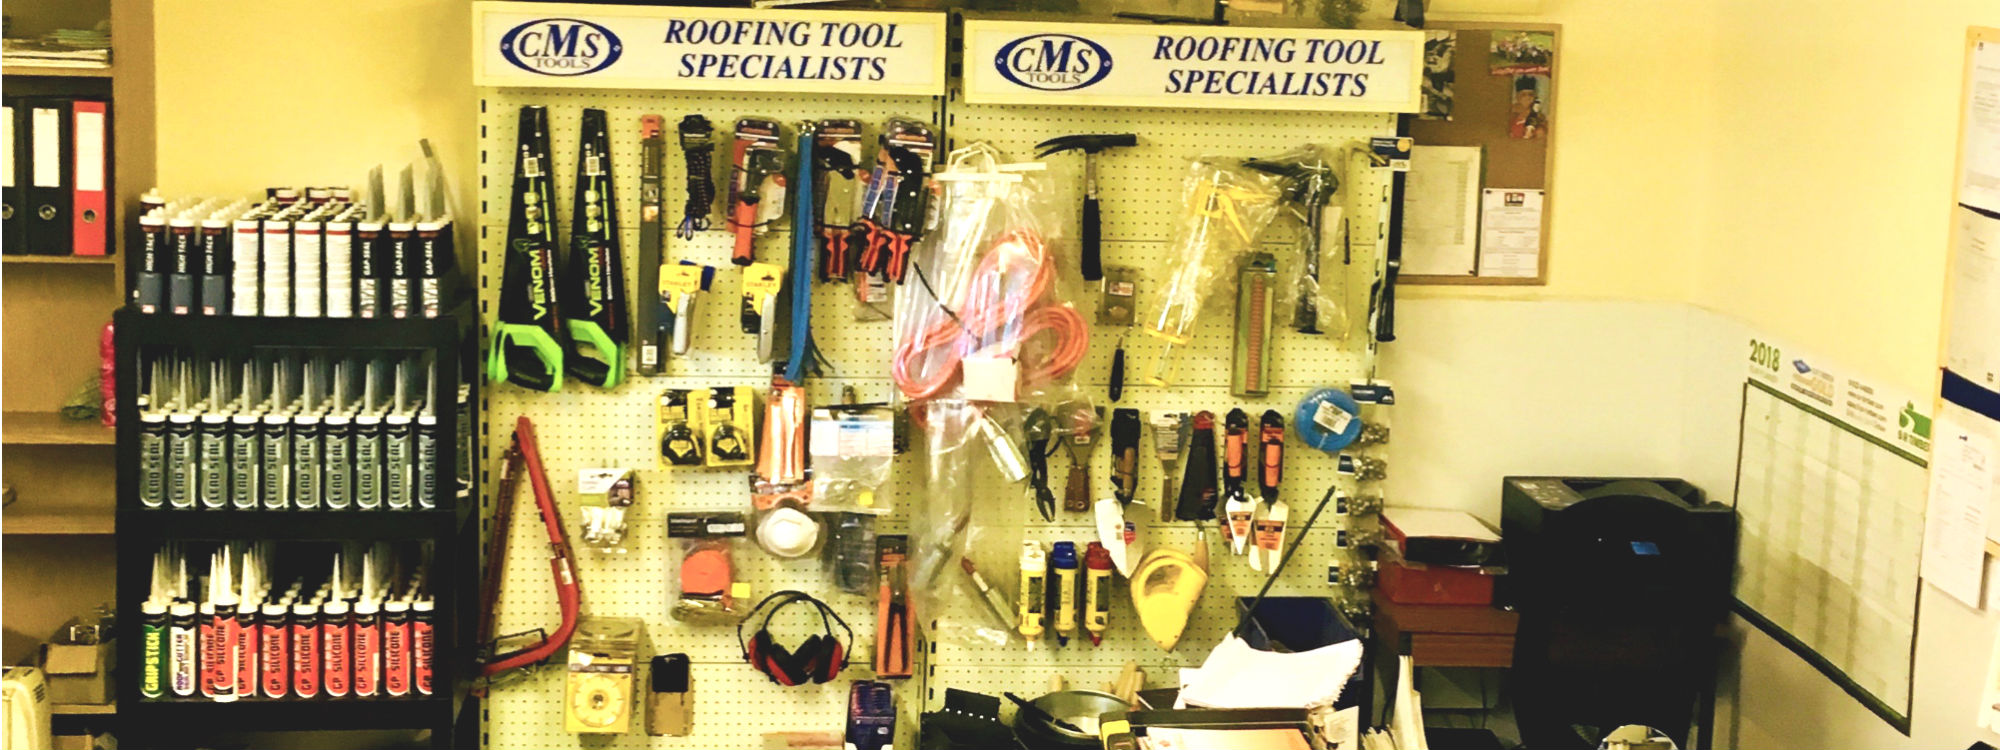 nails, roofing, tools